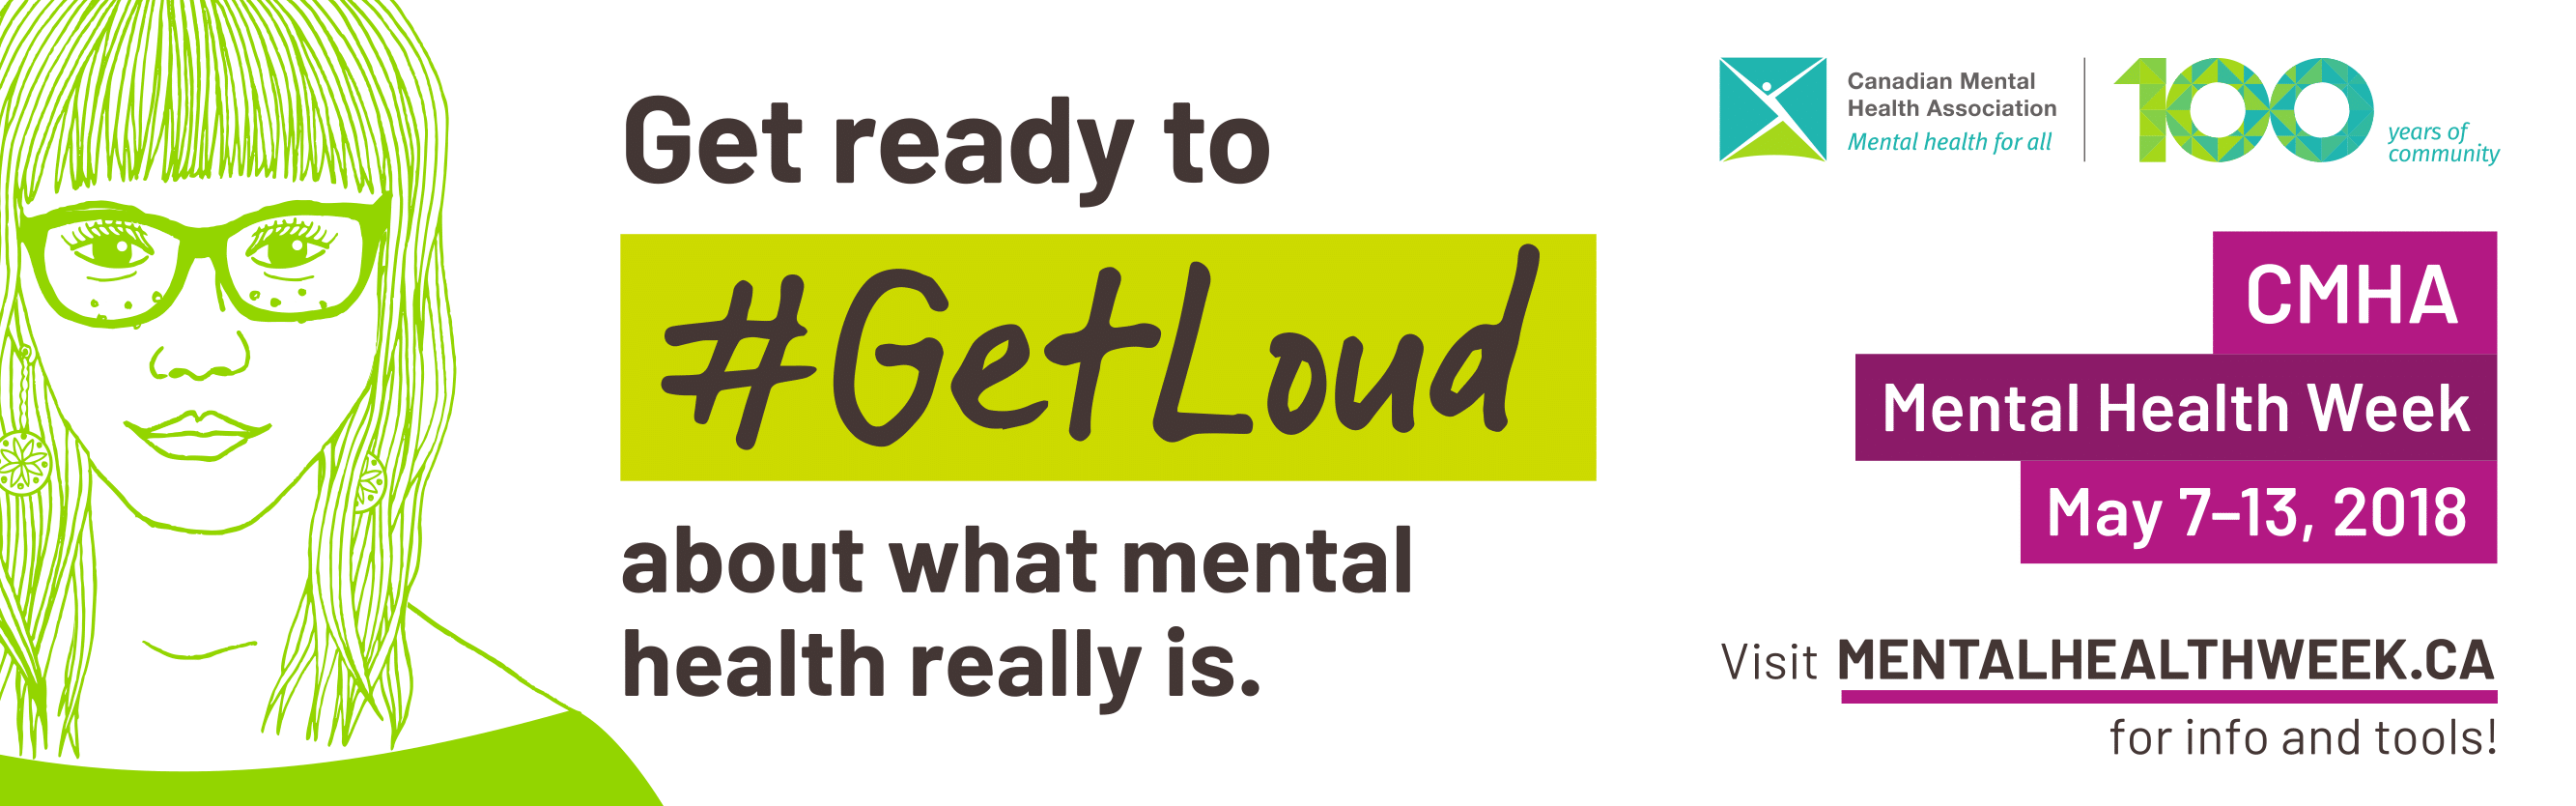 Get Ready to #GetLoud for Mental Health Week, May 7-13, 2018